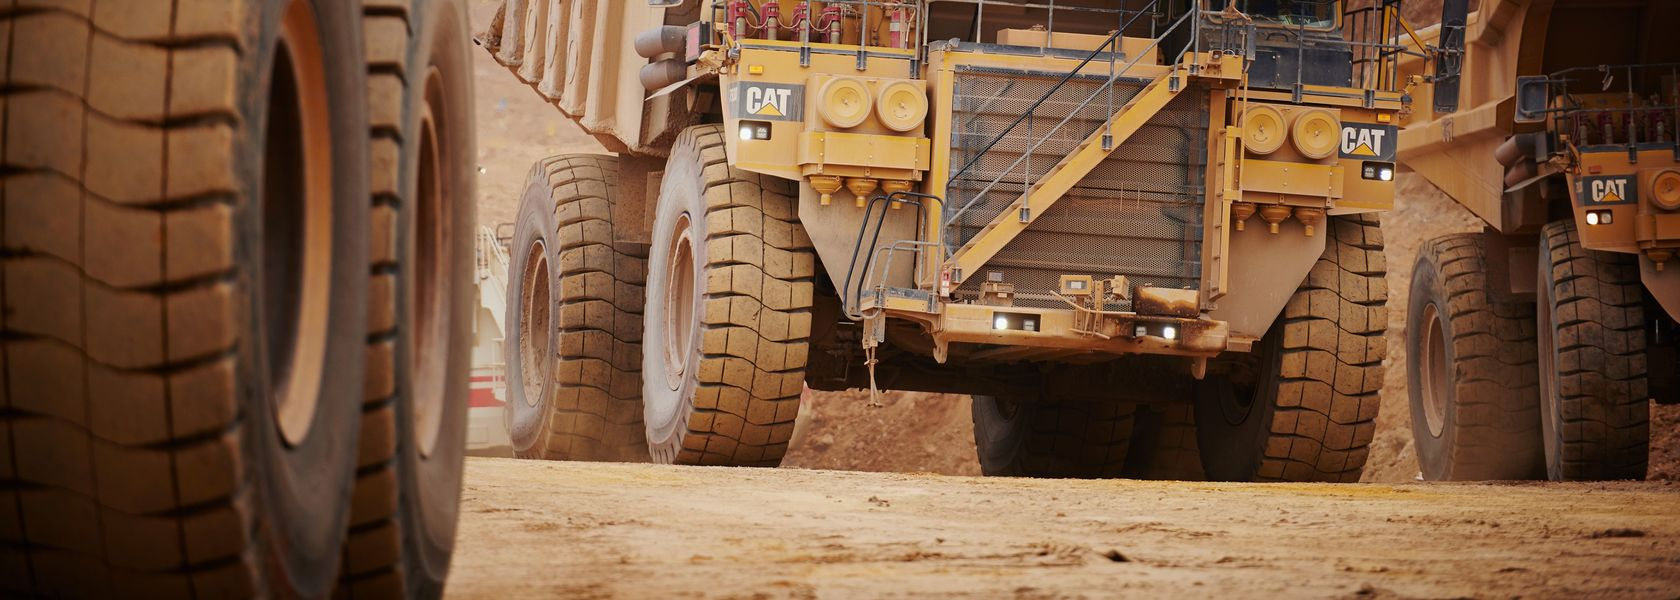 Legal challenges mount for Glencore